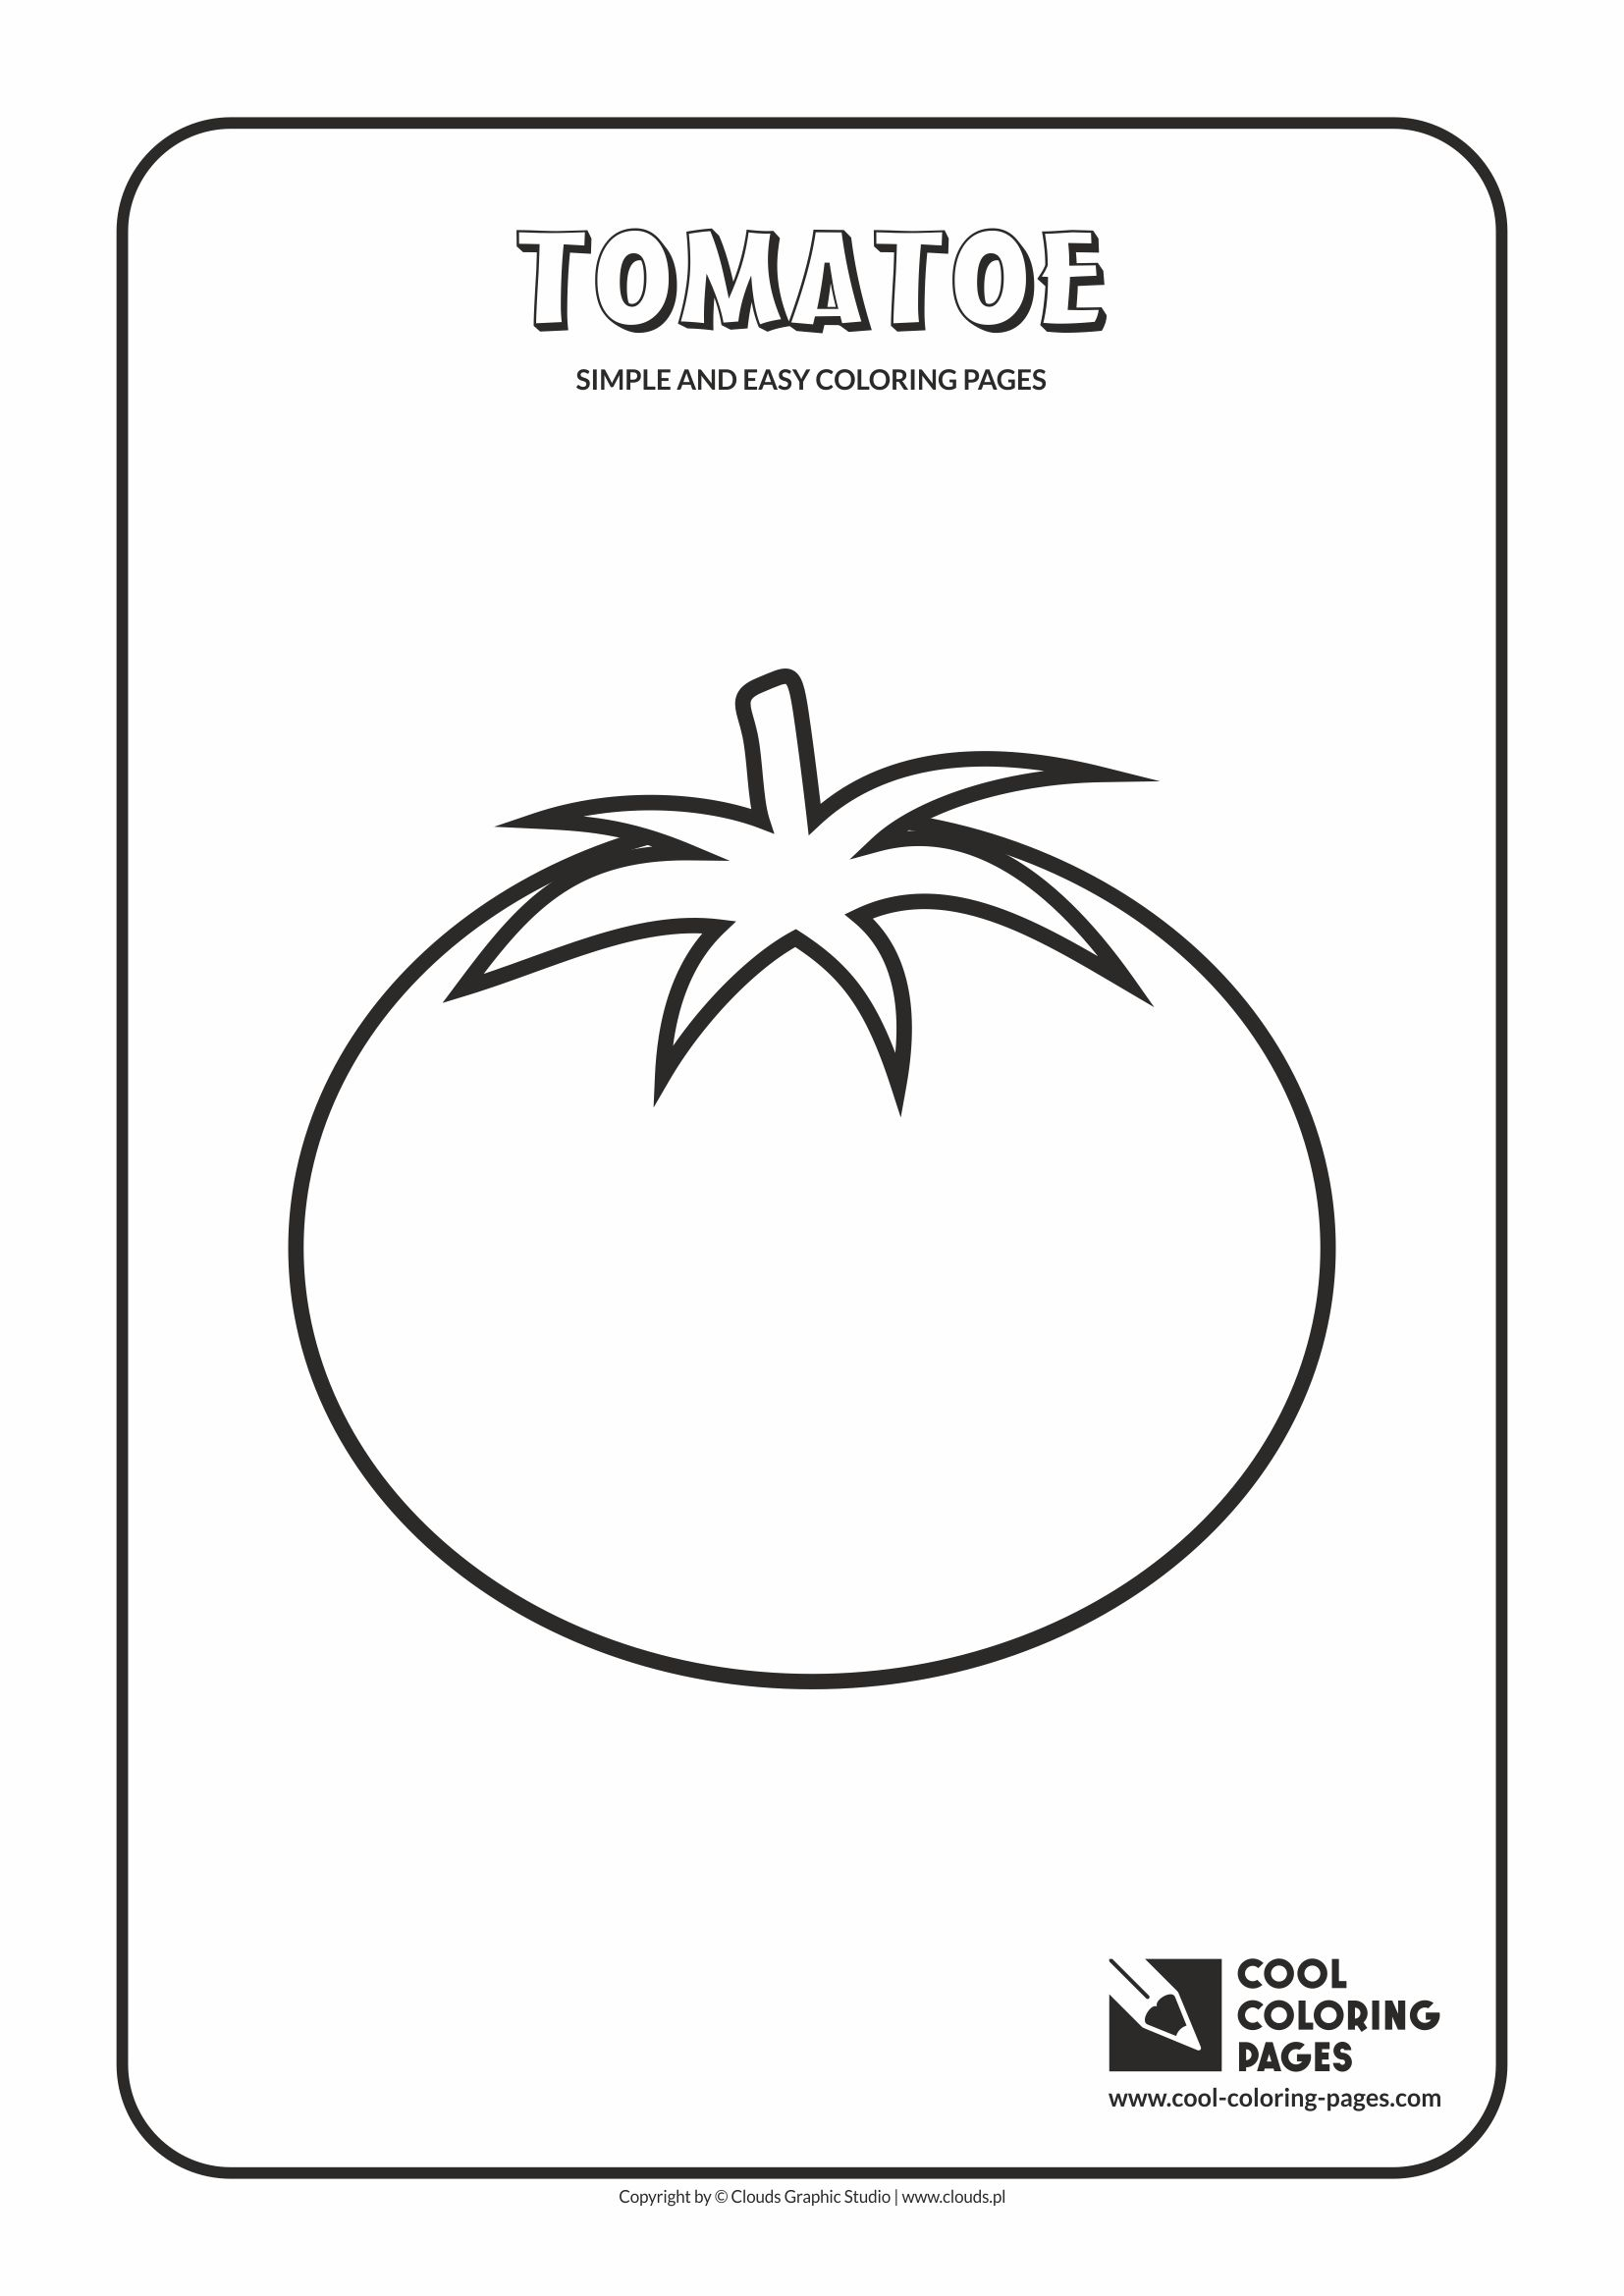 Simple and easy coloring pages for toddlers - Tomatoe